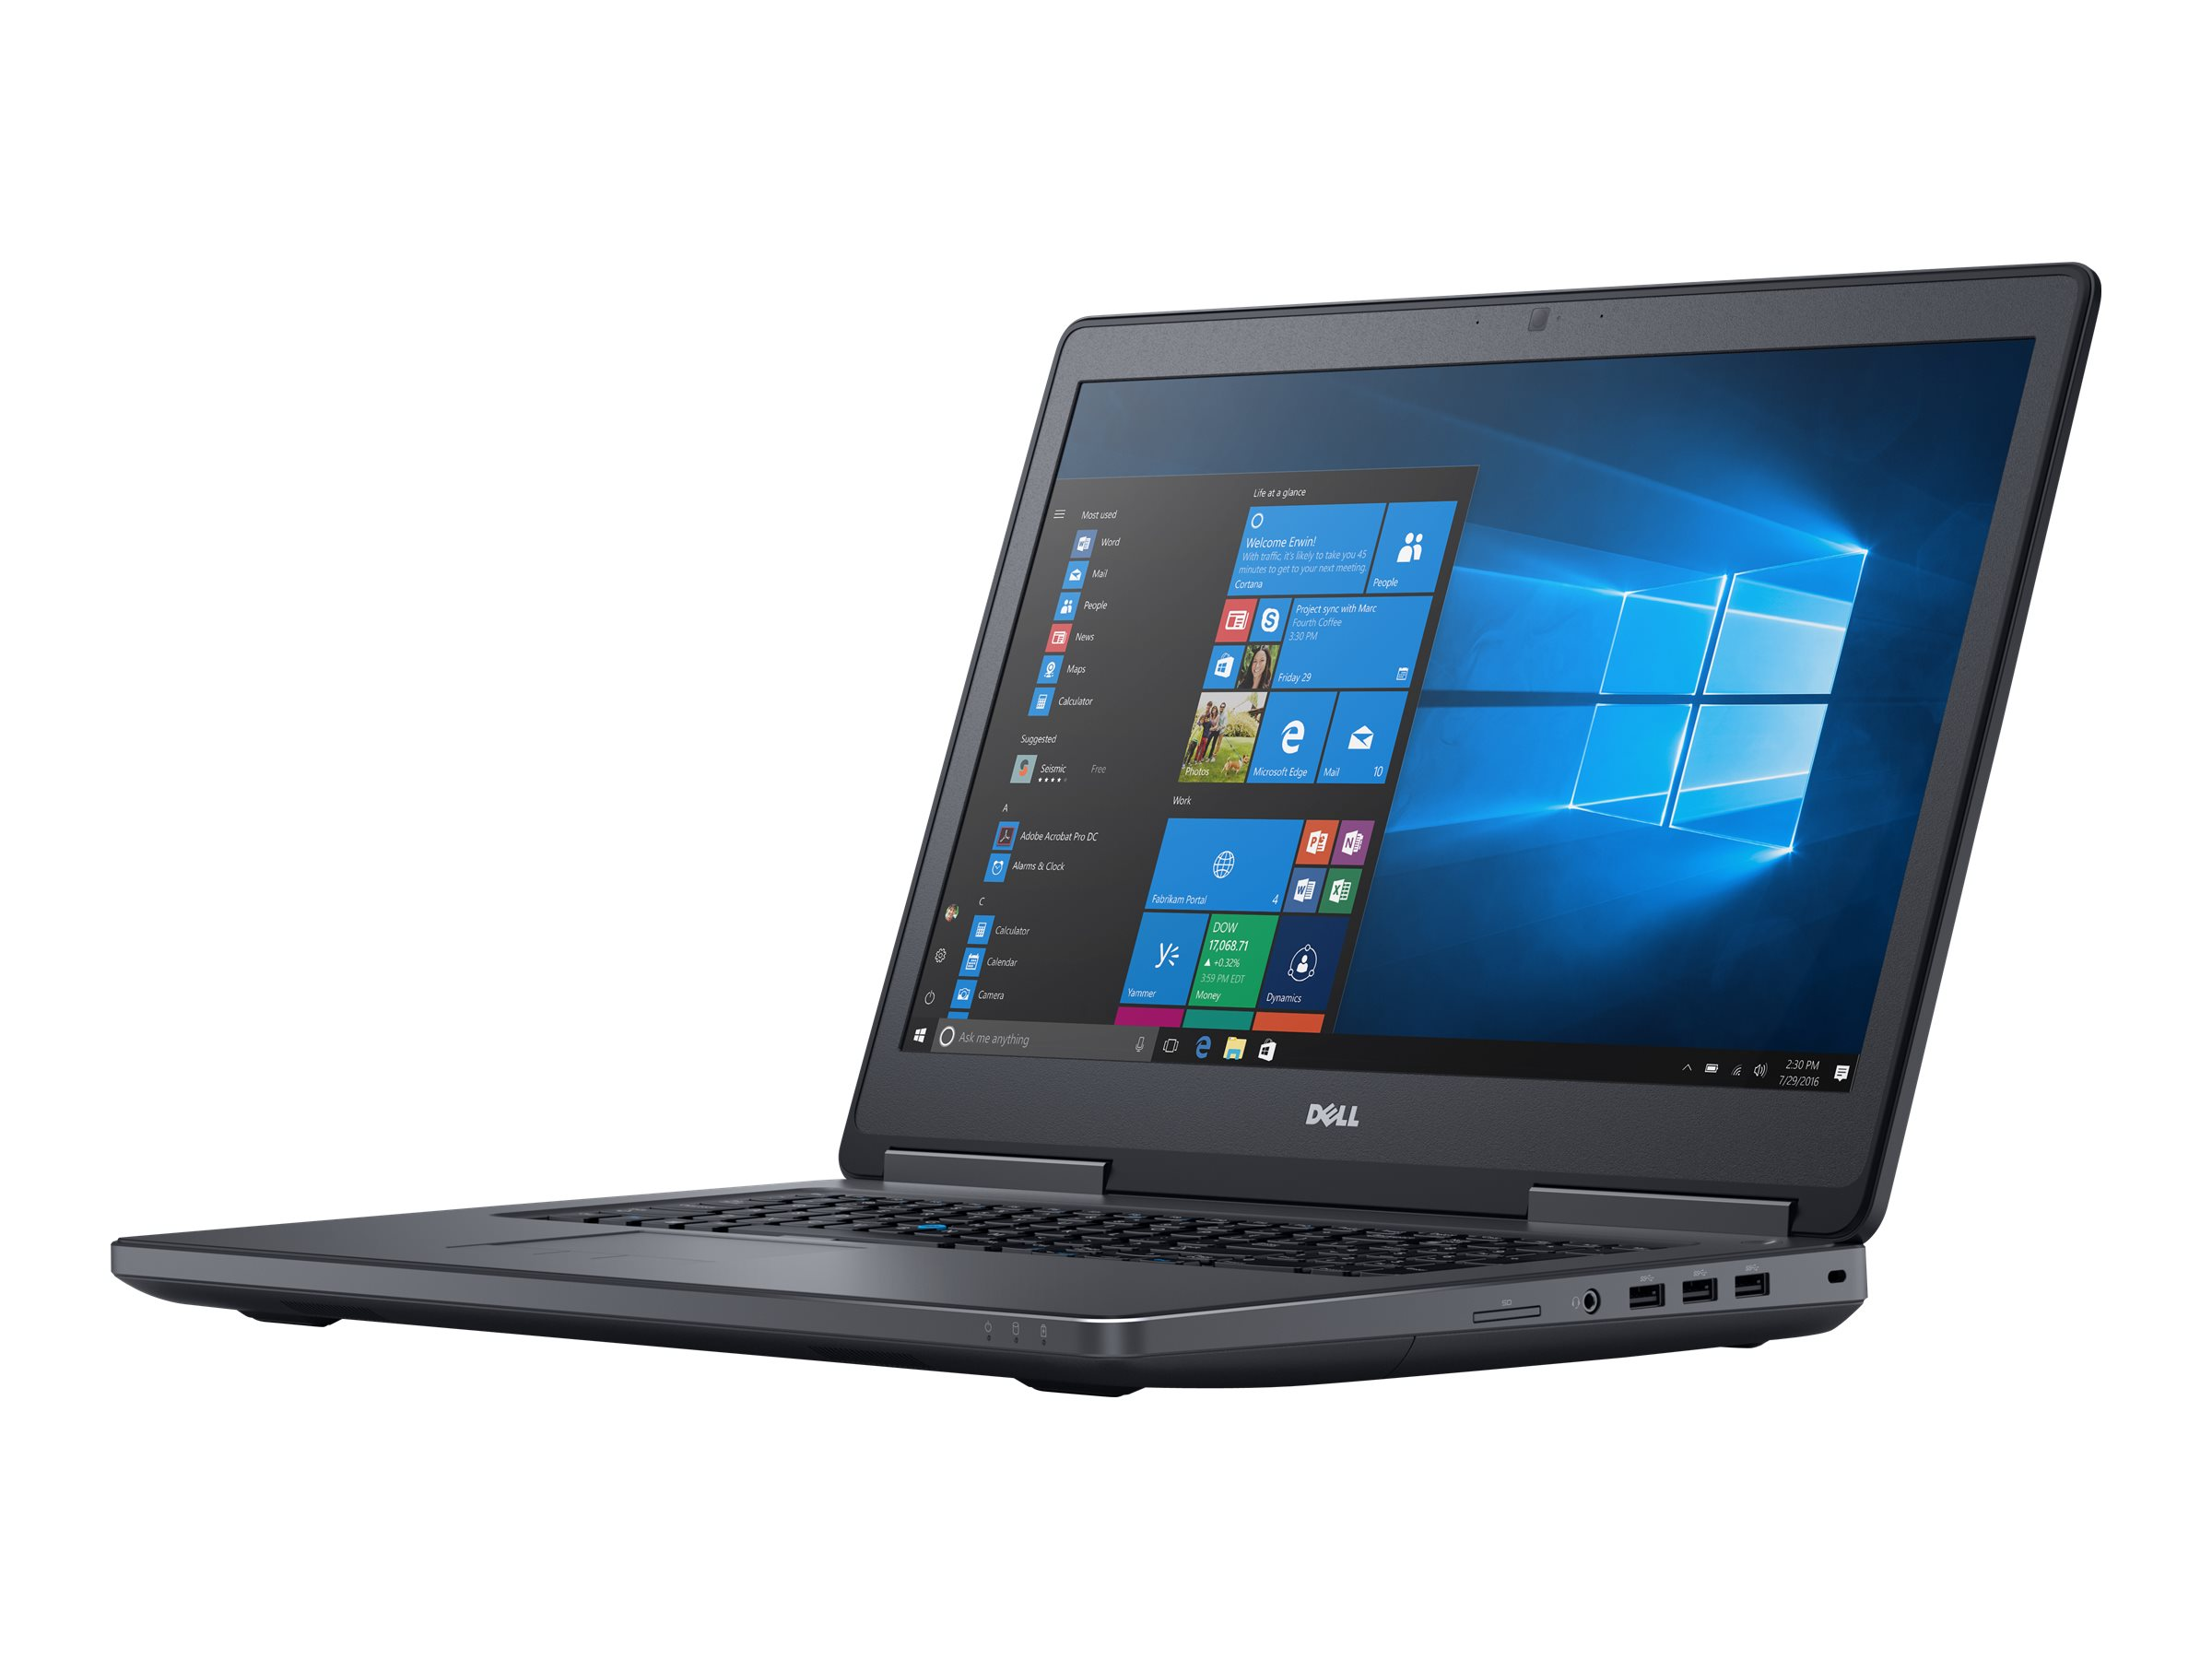 Dell Precision Mobile Workstation 7720 - Core i7 6820HQ / 2.7 GHz - Win 7 Pro 64-bit - 16 GB RAM - 256 GB SSD + 1 TB HDD - 43.838 cm (17.3